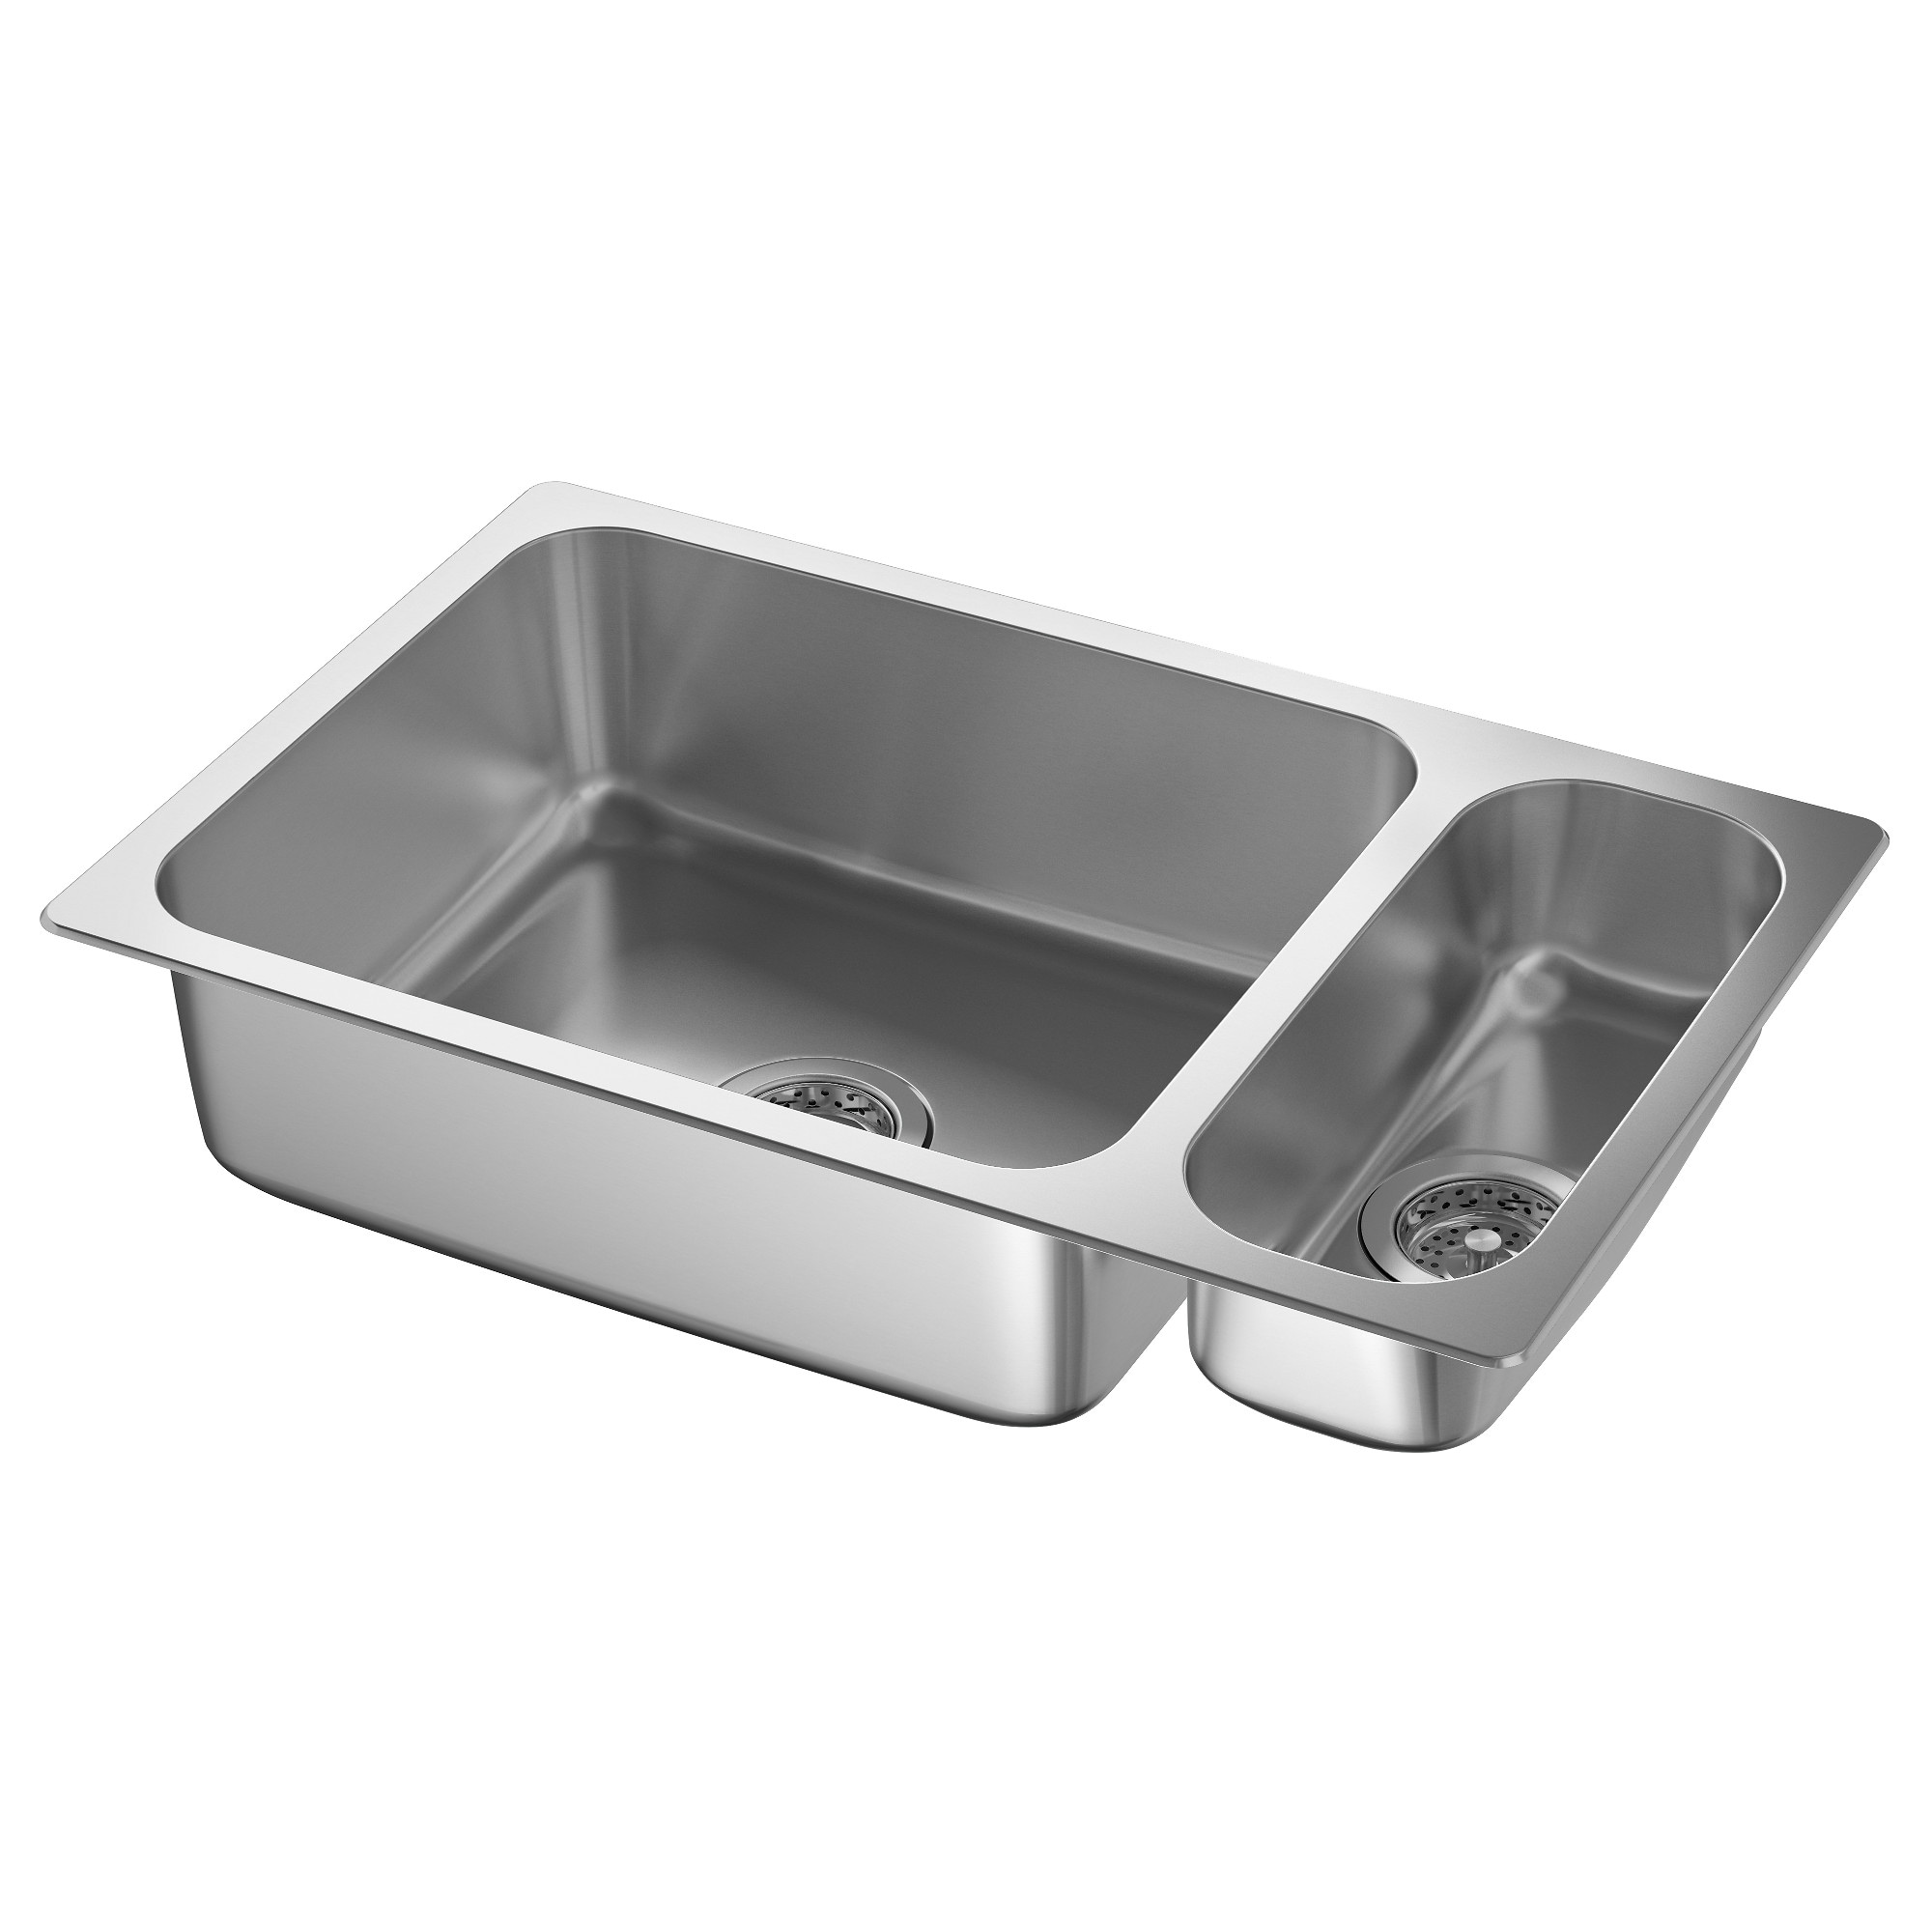 Hillesj N 1 1 2 Bowl Dual Mount Sink Stainless Steel Length 29 1